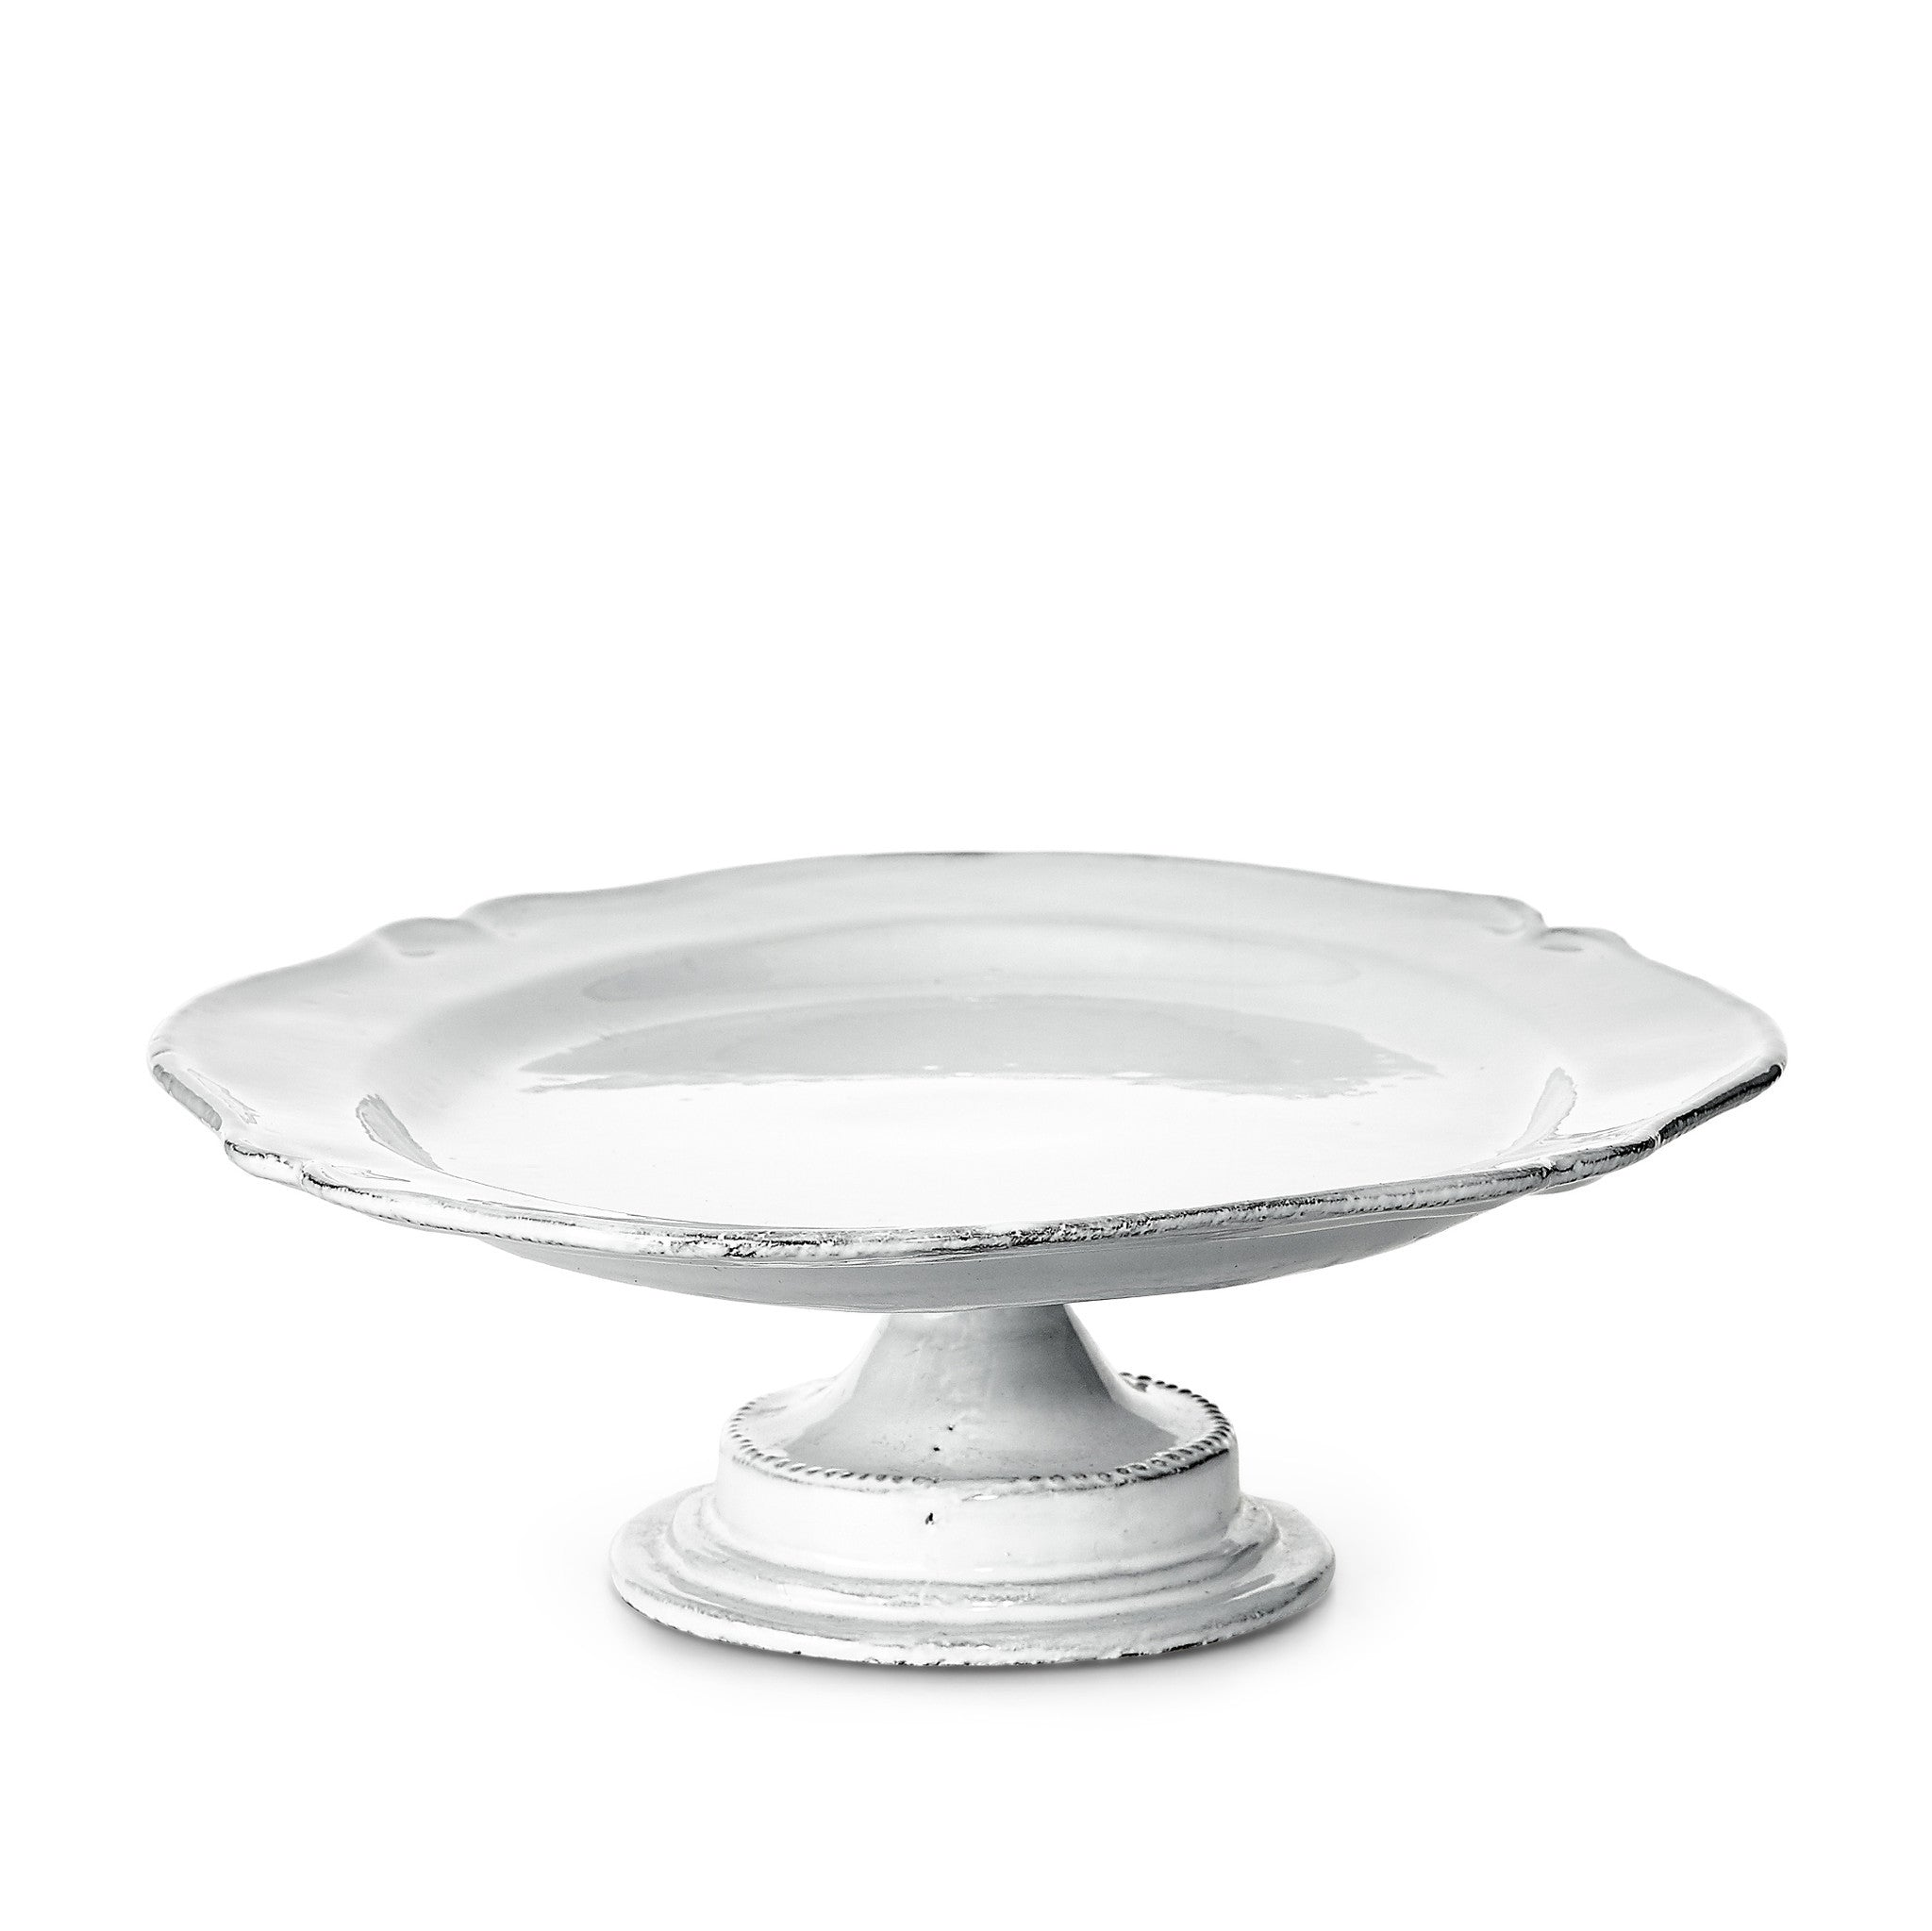 Bac Cake Stand, Medium by Astier de Villatte